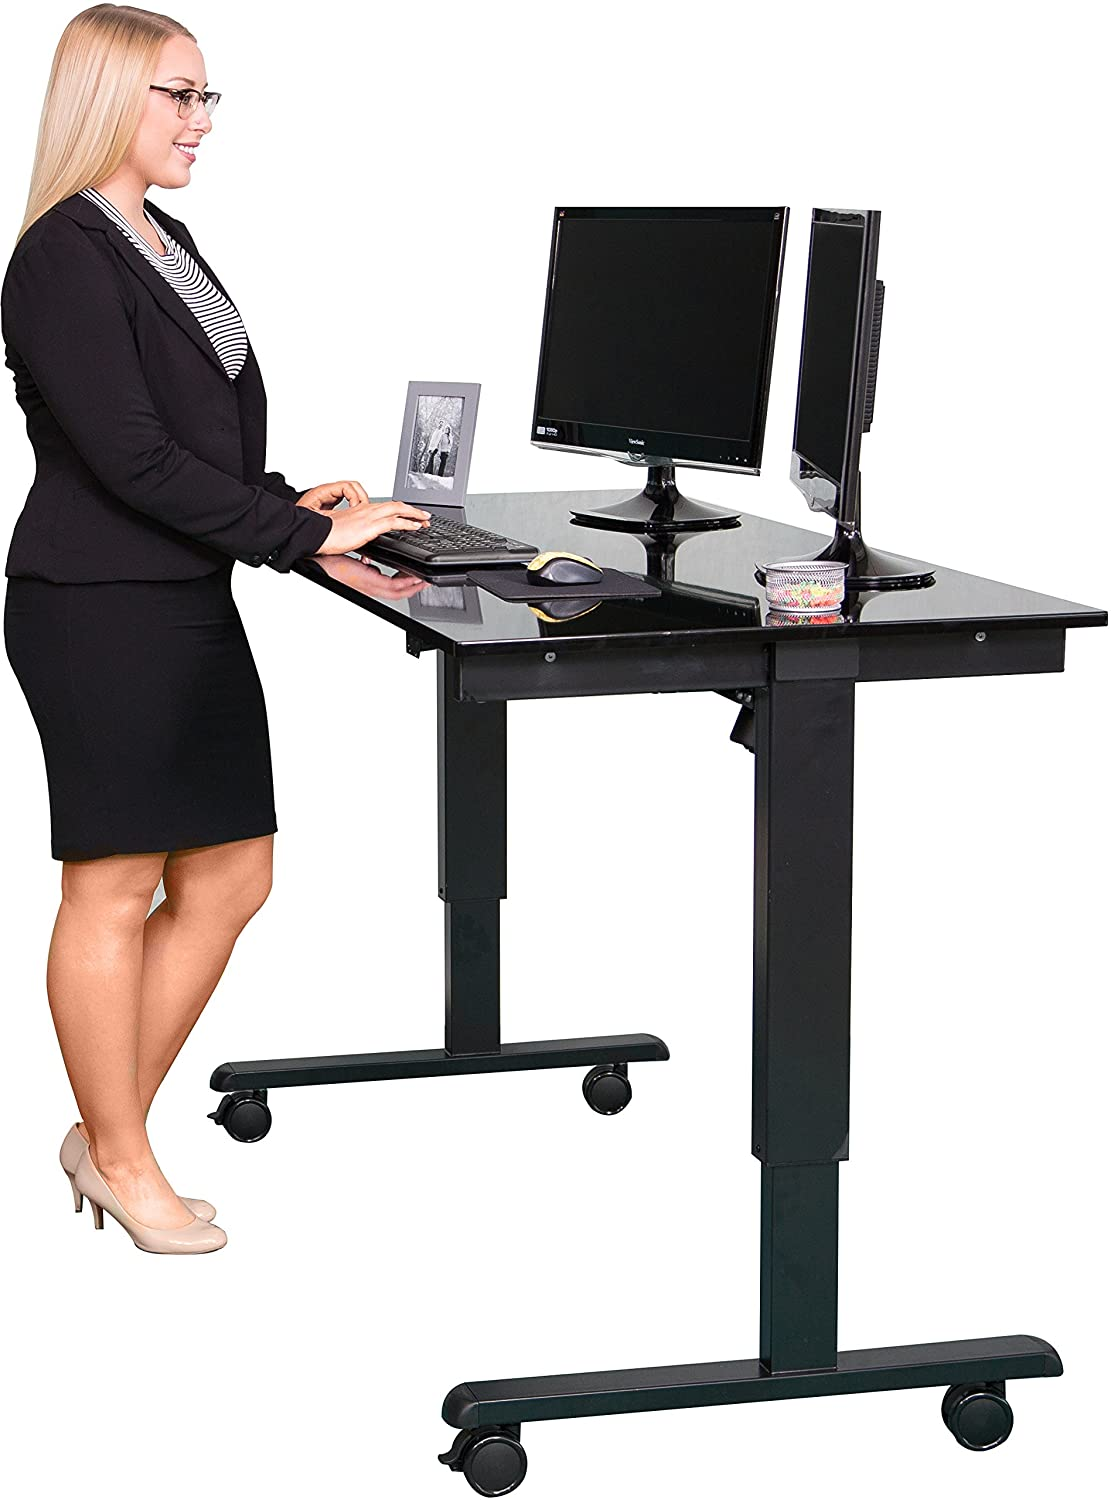 amazon com stand up desk store electric standing desk adjustable rh amazon com standing up desk health results standing up desk ikea